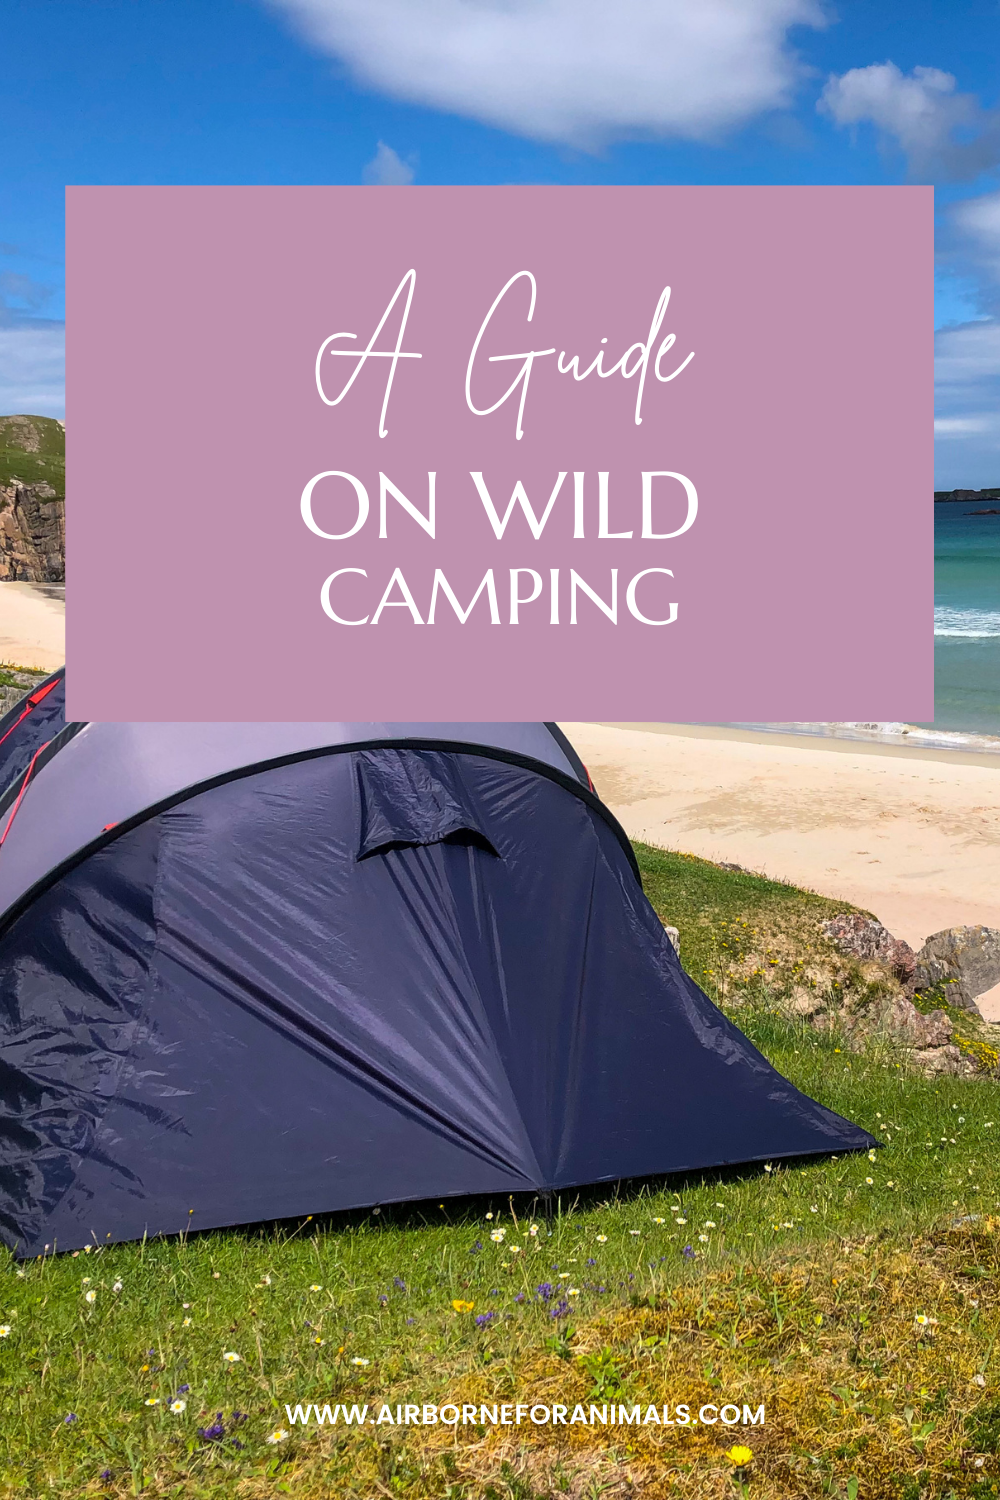 A guide on wild camping! Wild camping is something everyone should try at least once so find out what you need to know here. #wildcamping #campingguide #guideonwildcamping via @airborneforanimals